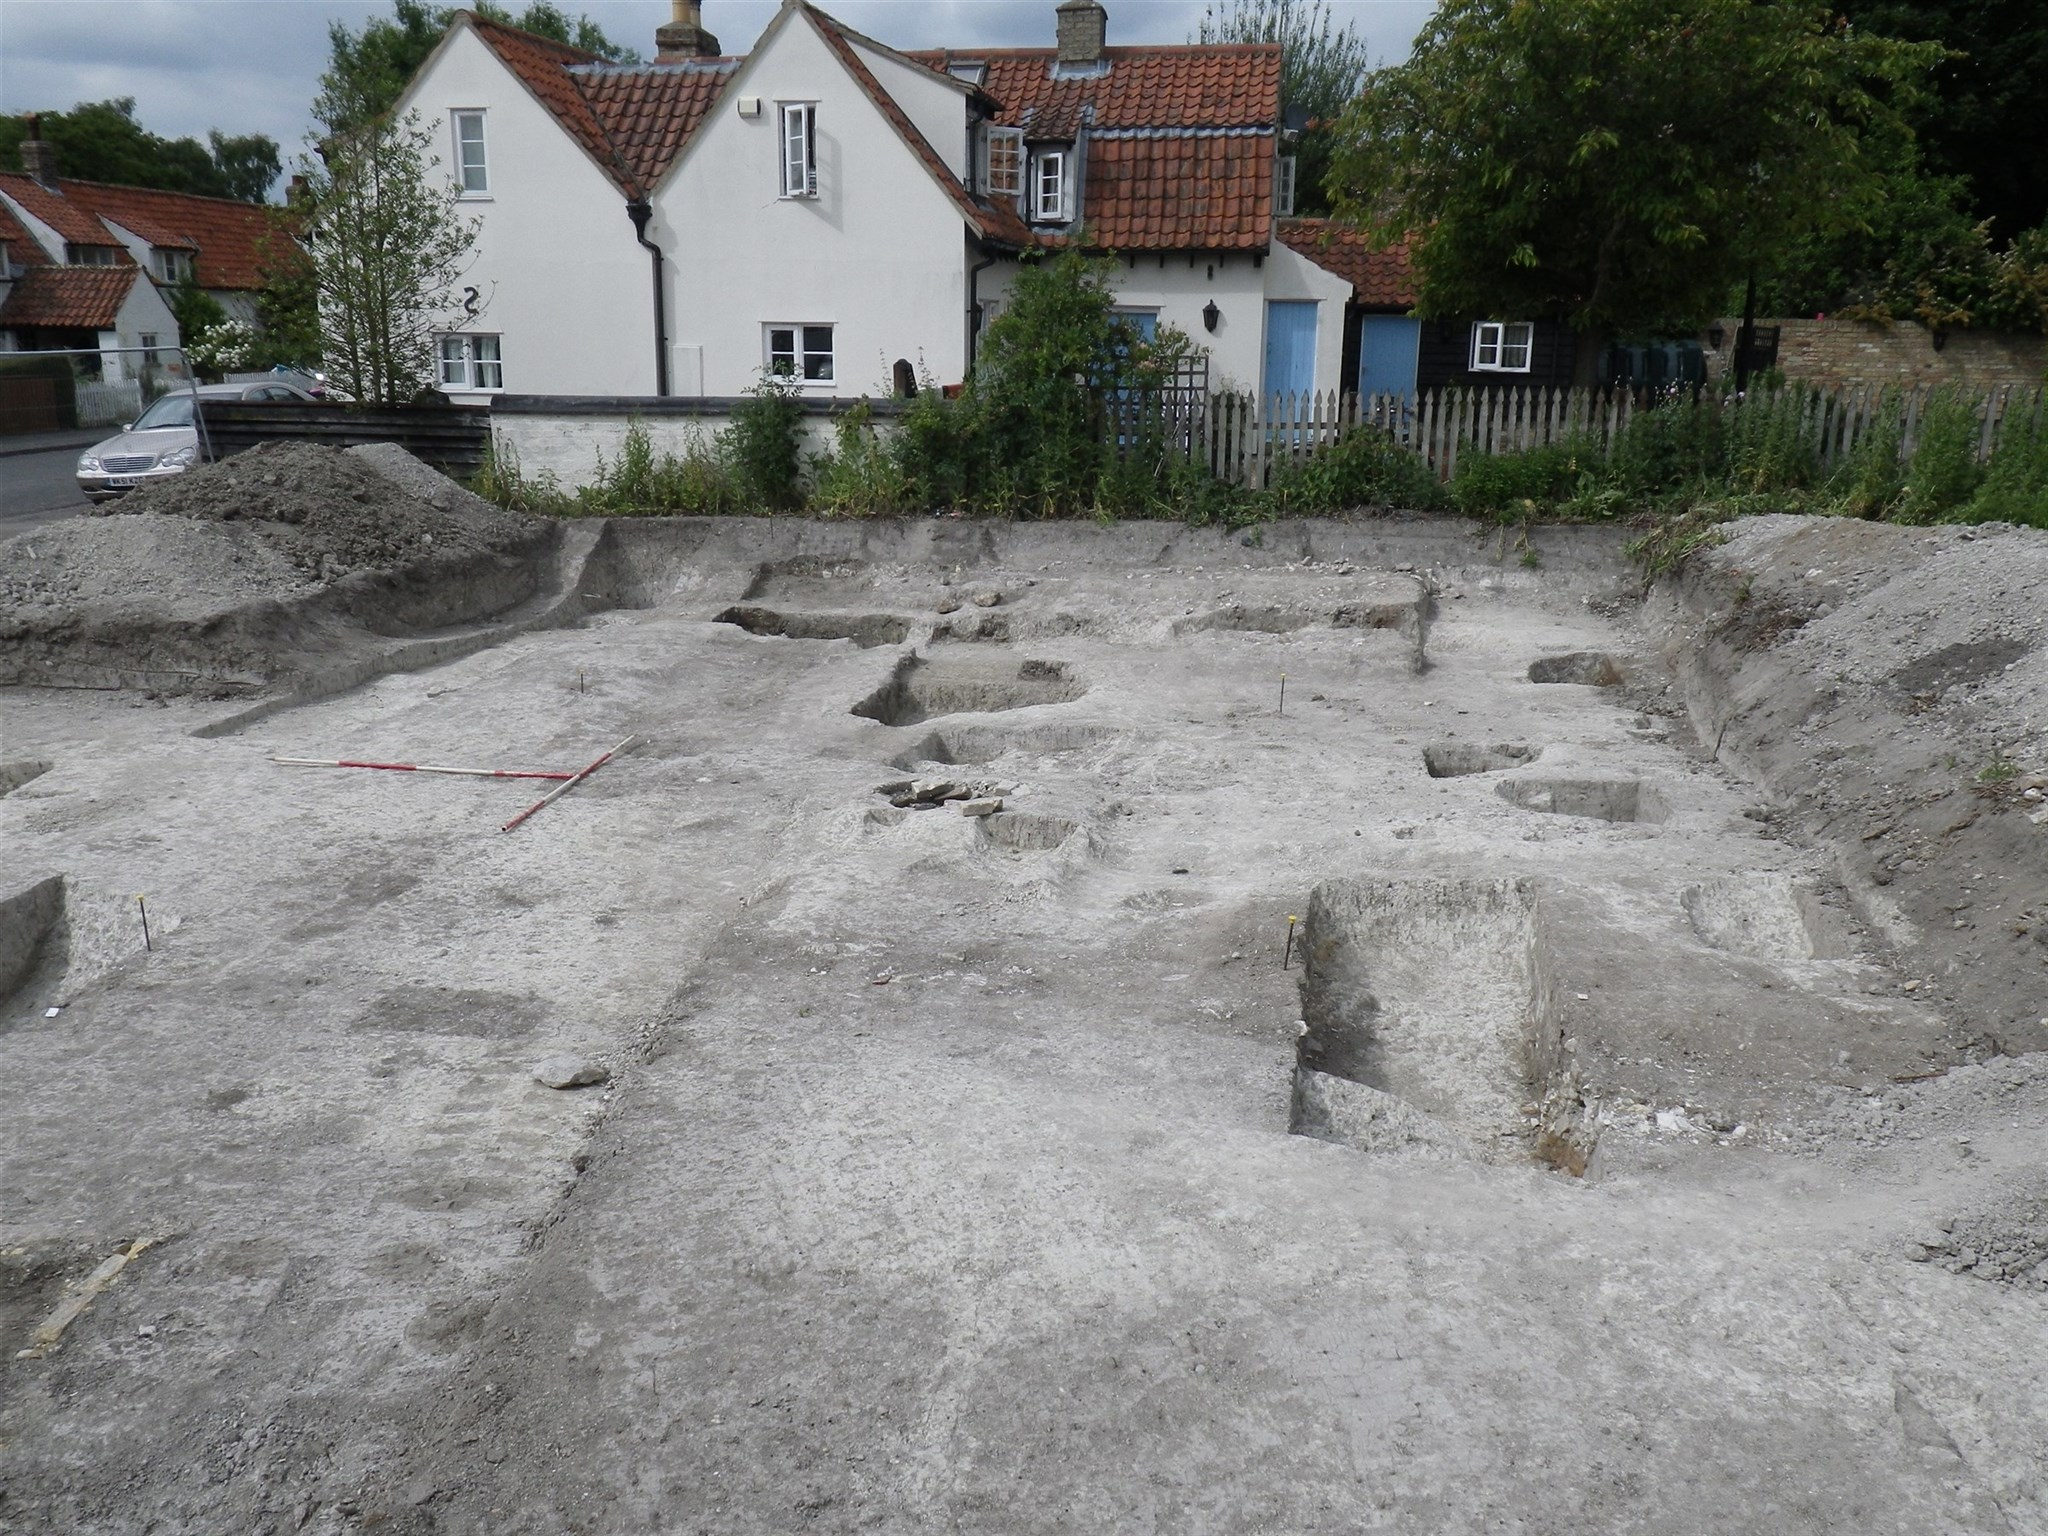 Excavation site at Swaffham Bulbeck